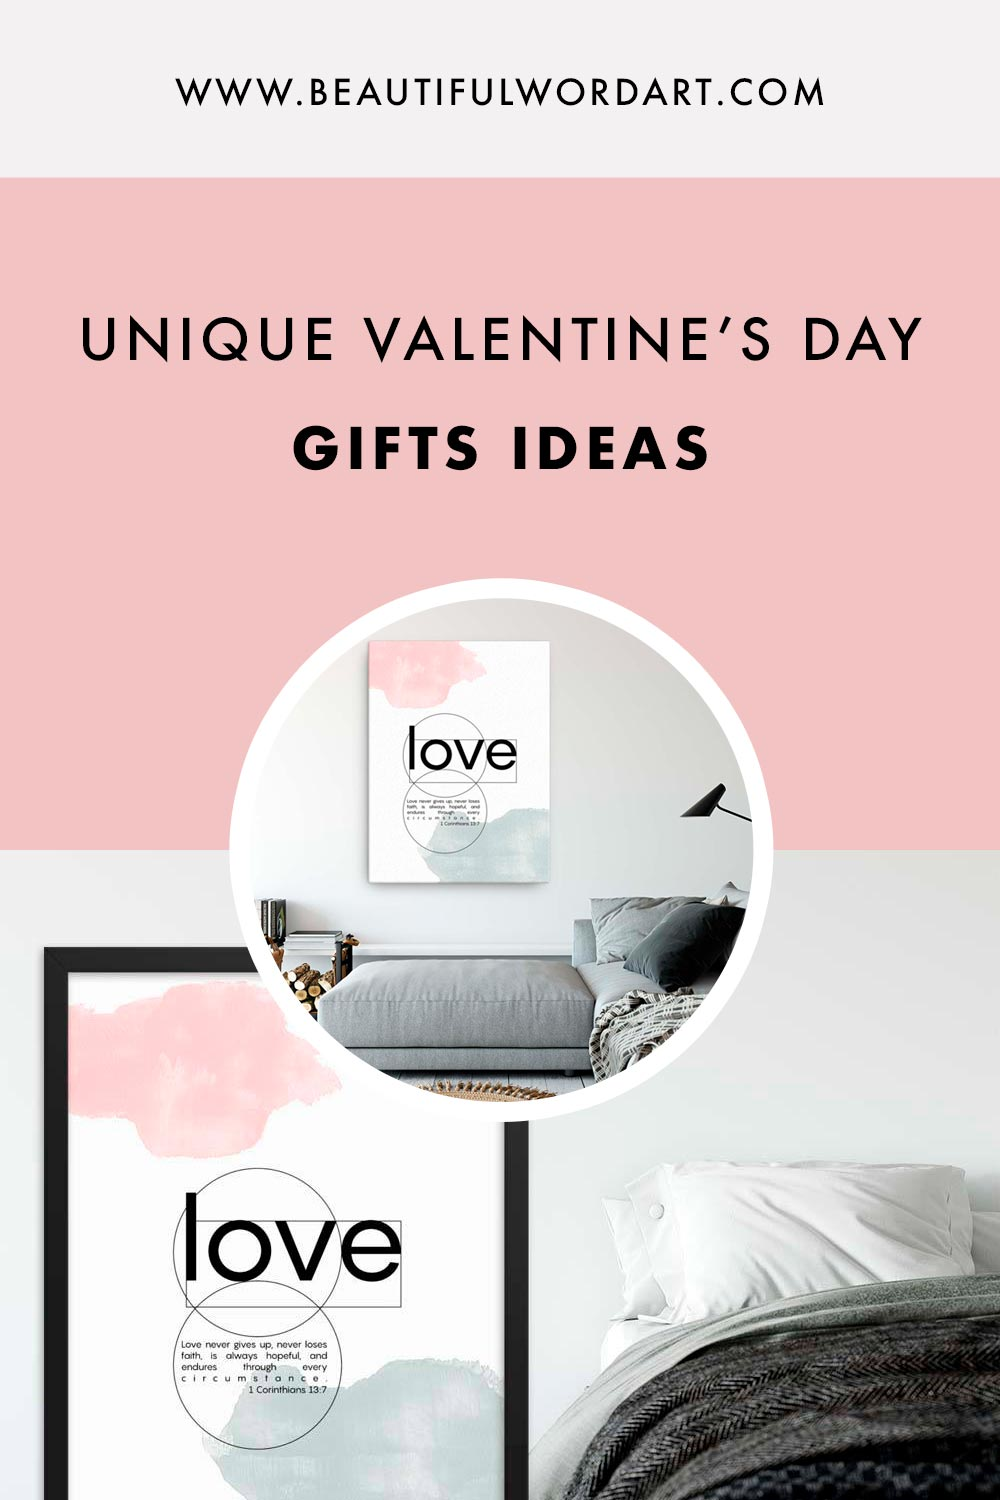 Unique Valentine's Day Gifts Ideas